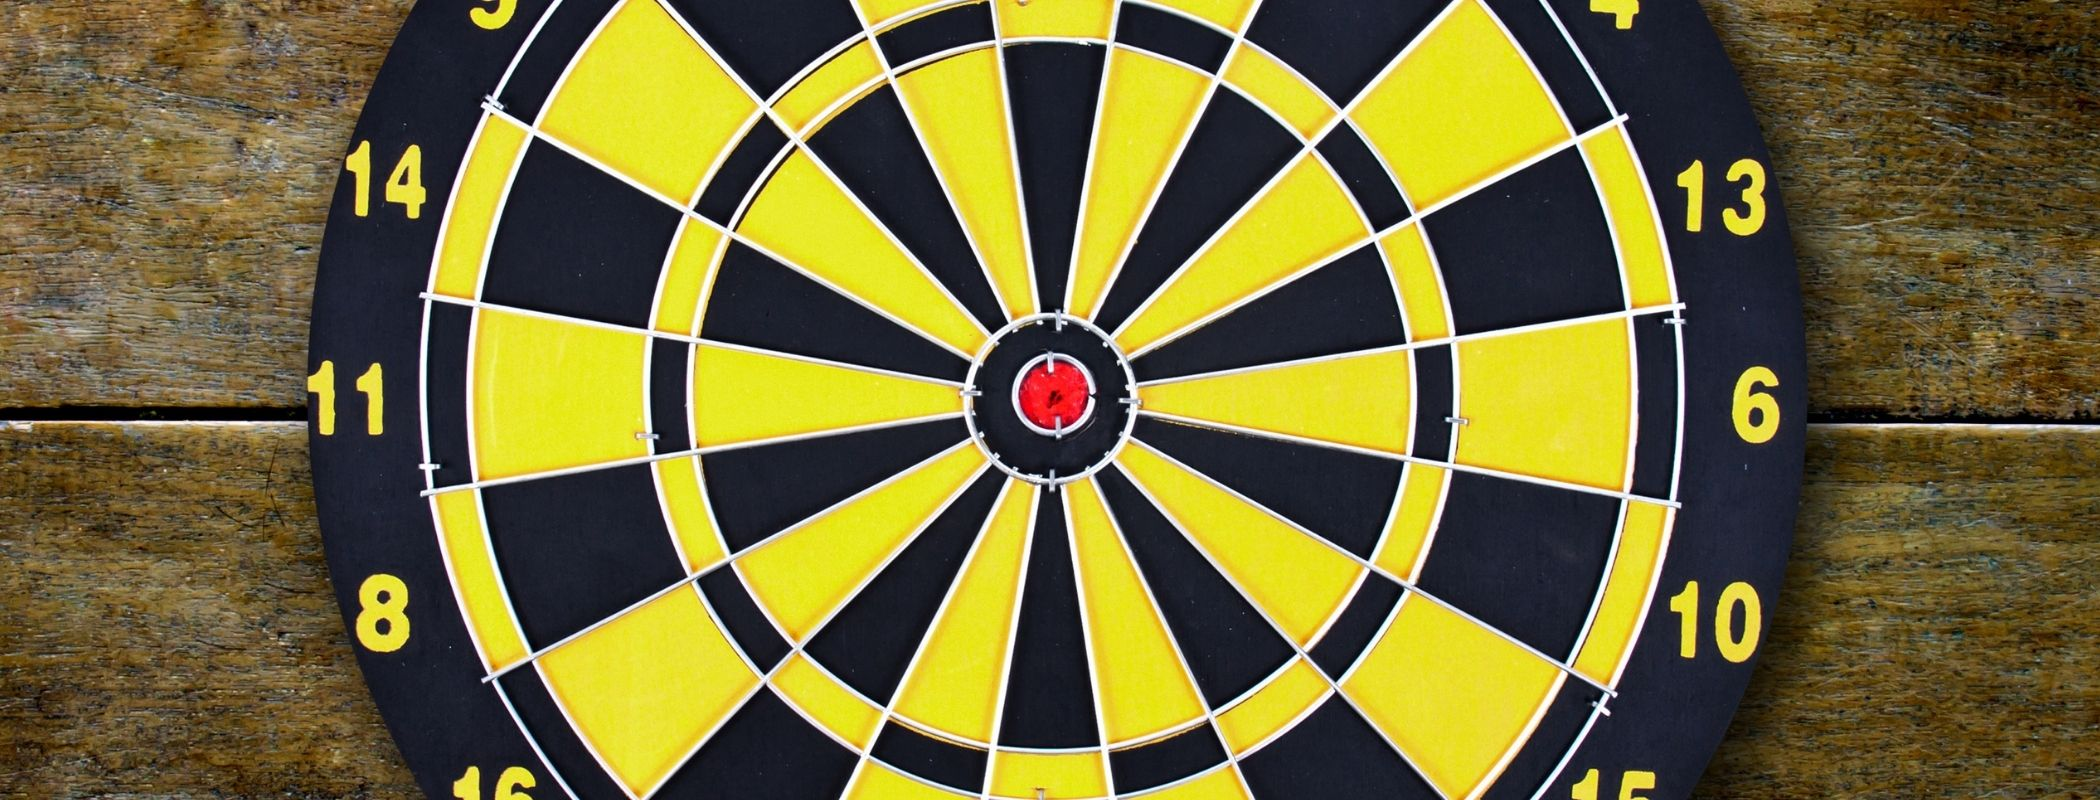 Most Expensive Dart Boards 2021